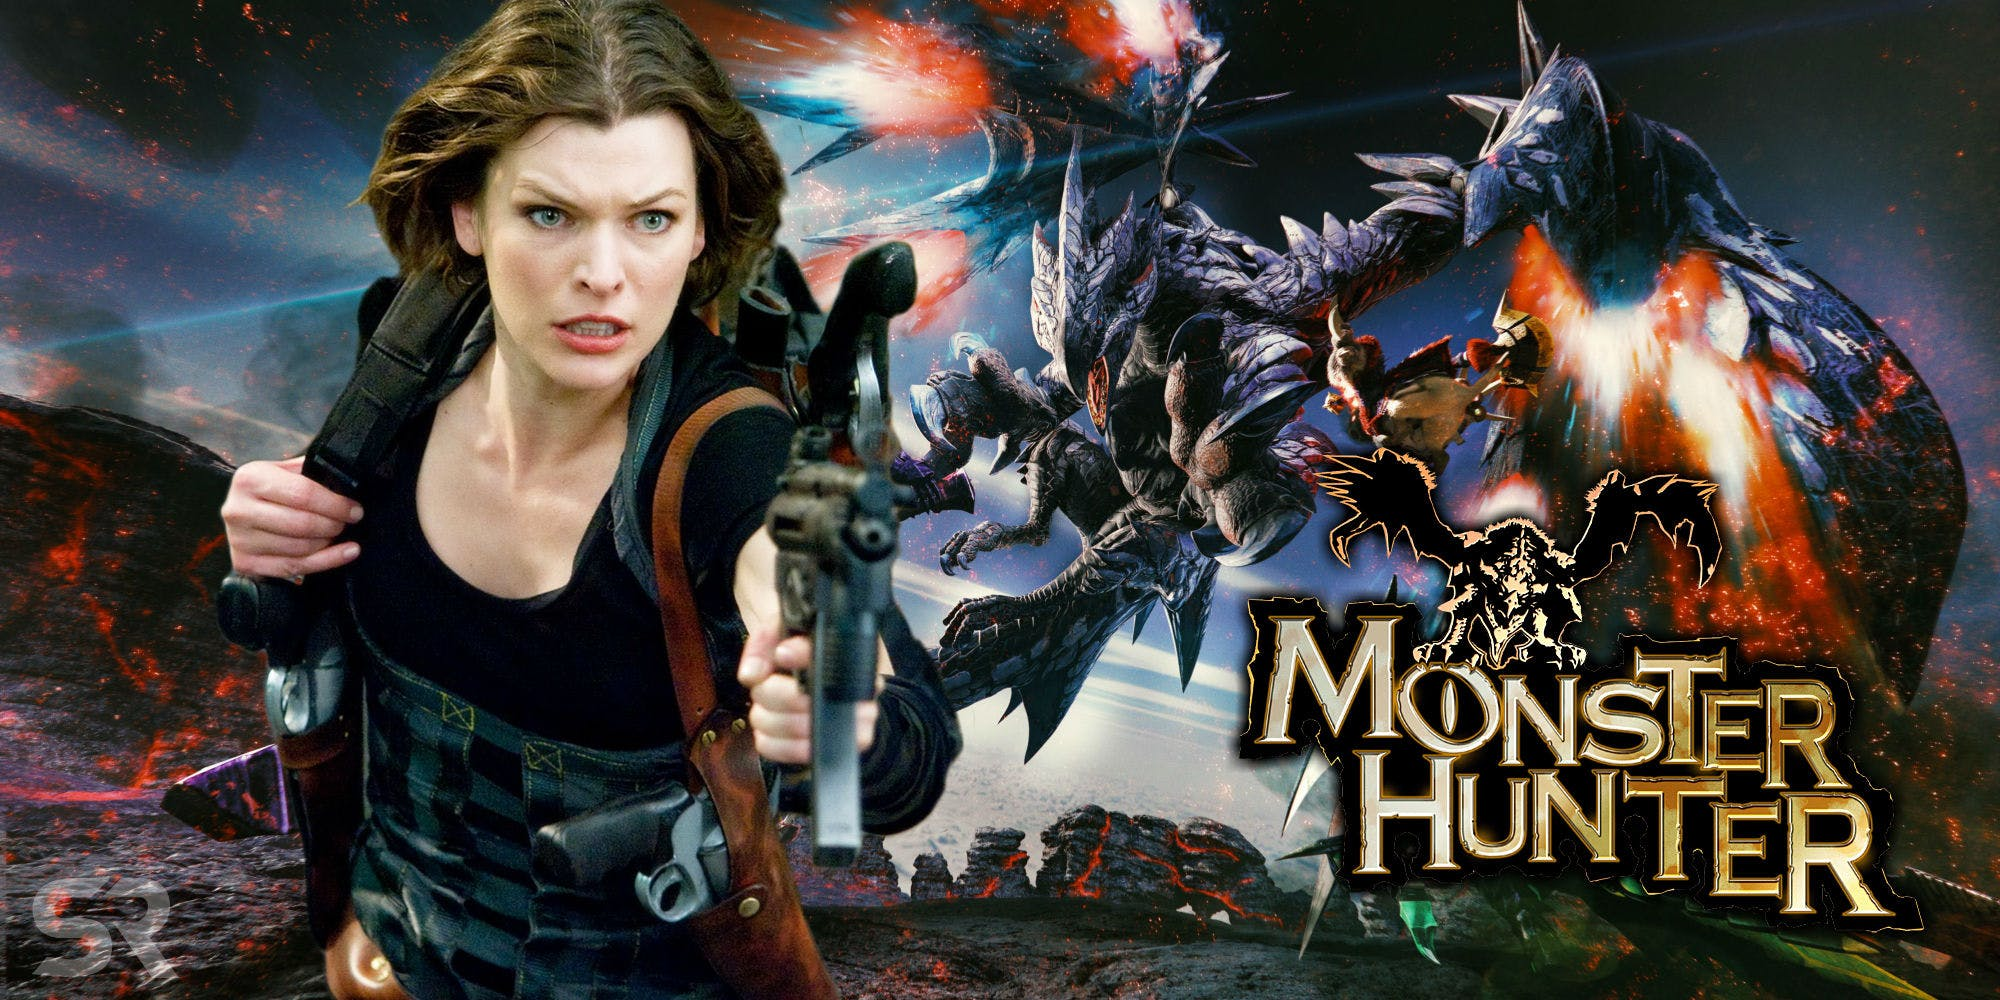 122922-Monster-Hunter-Milla-Jovovich-SR.